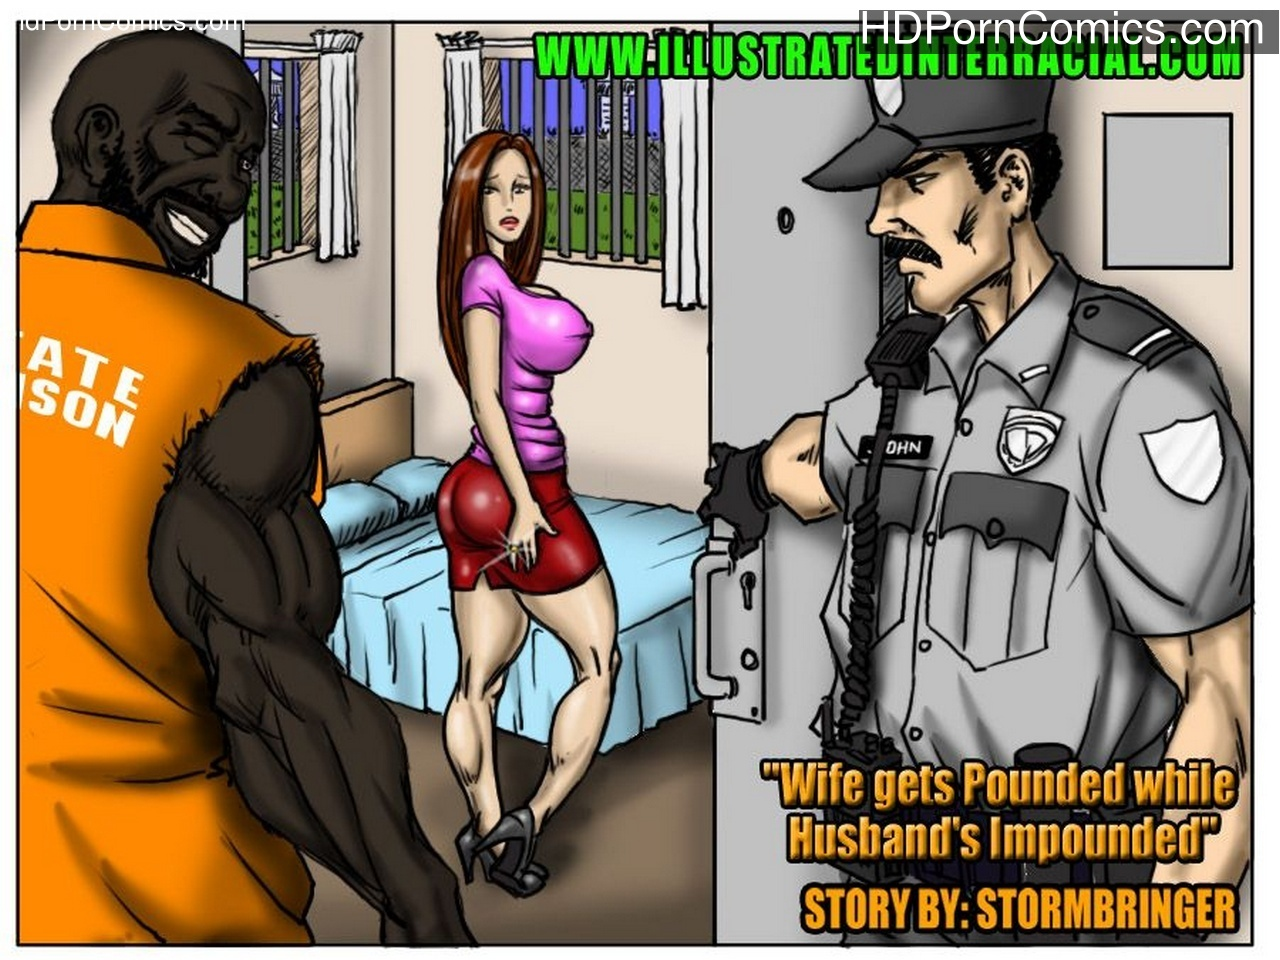 Wife Gets Pounded While Husband's Impounded Sex Comic